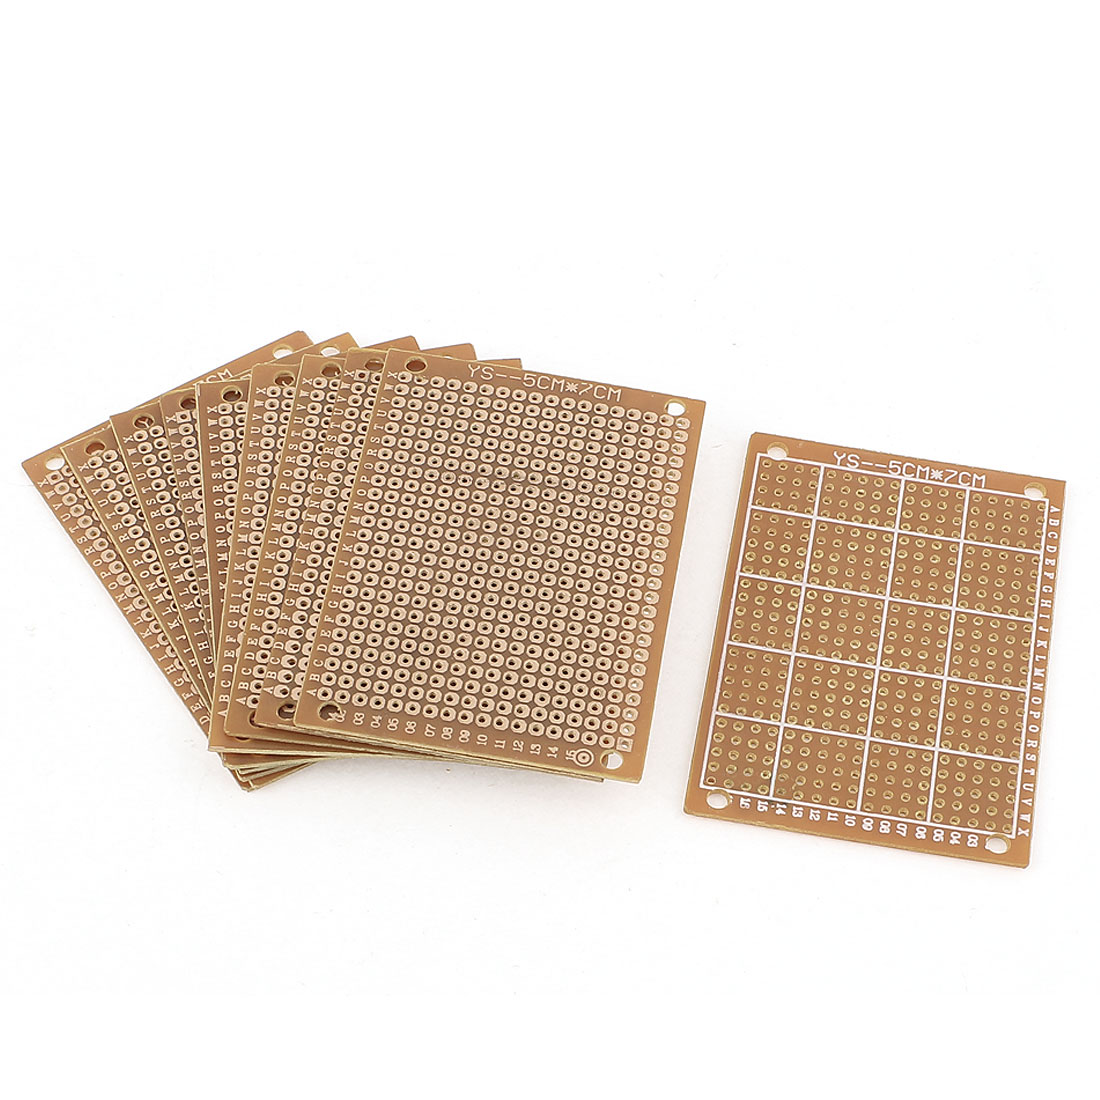 10pcs Single-sided PCB Printed Circuit Board Prototype Breadboard 7cm x 5cm